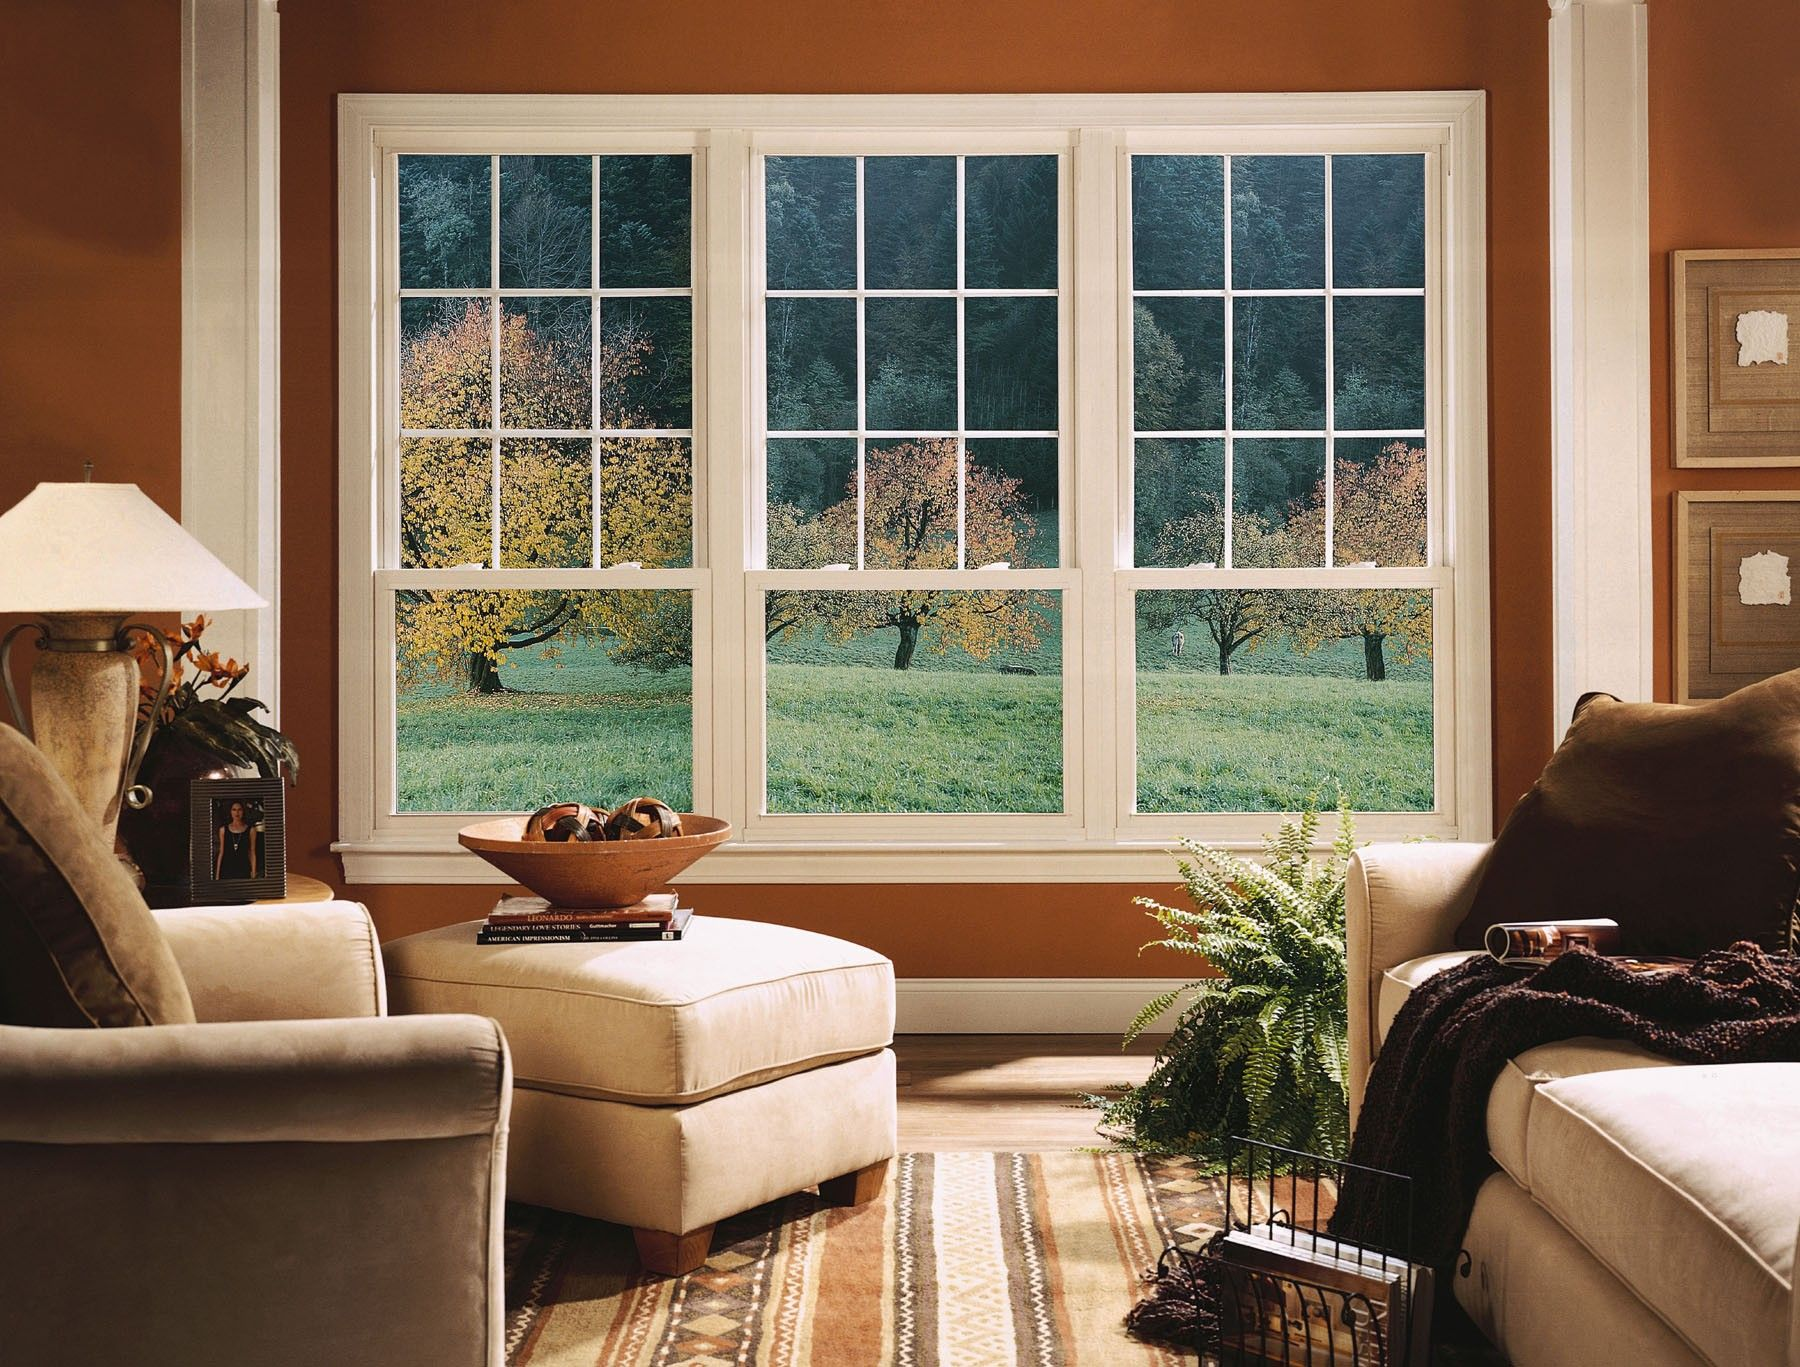 House windows ideas - Create A Beautiful View With The Right Windows In Your Home